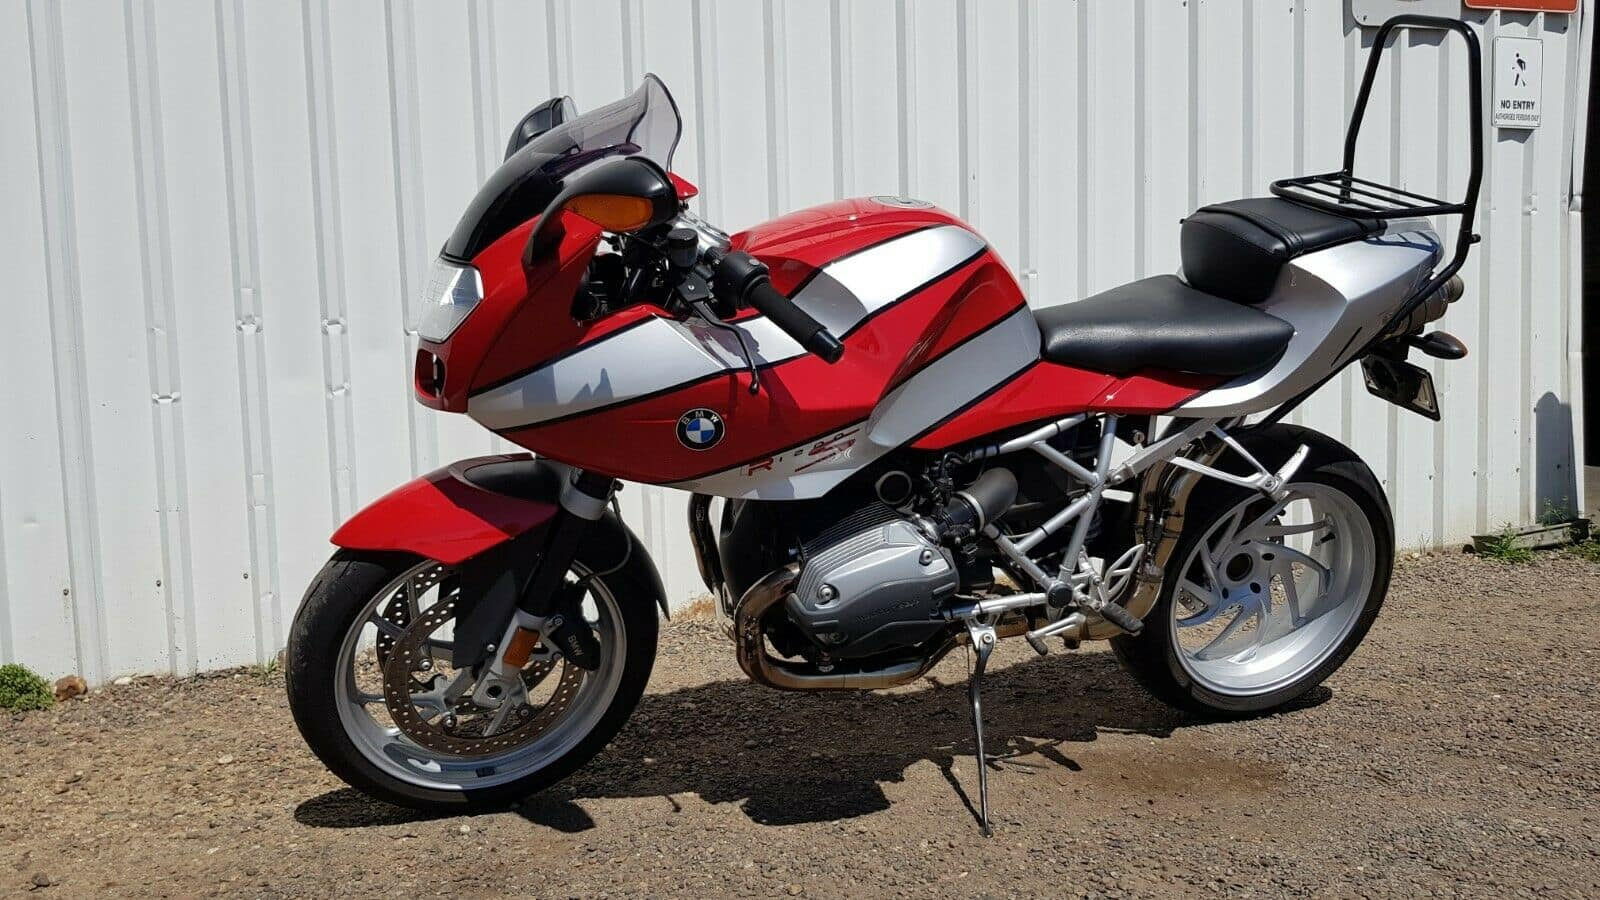 BMW R1200S - I ended up buying this